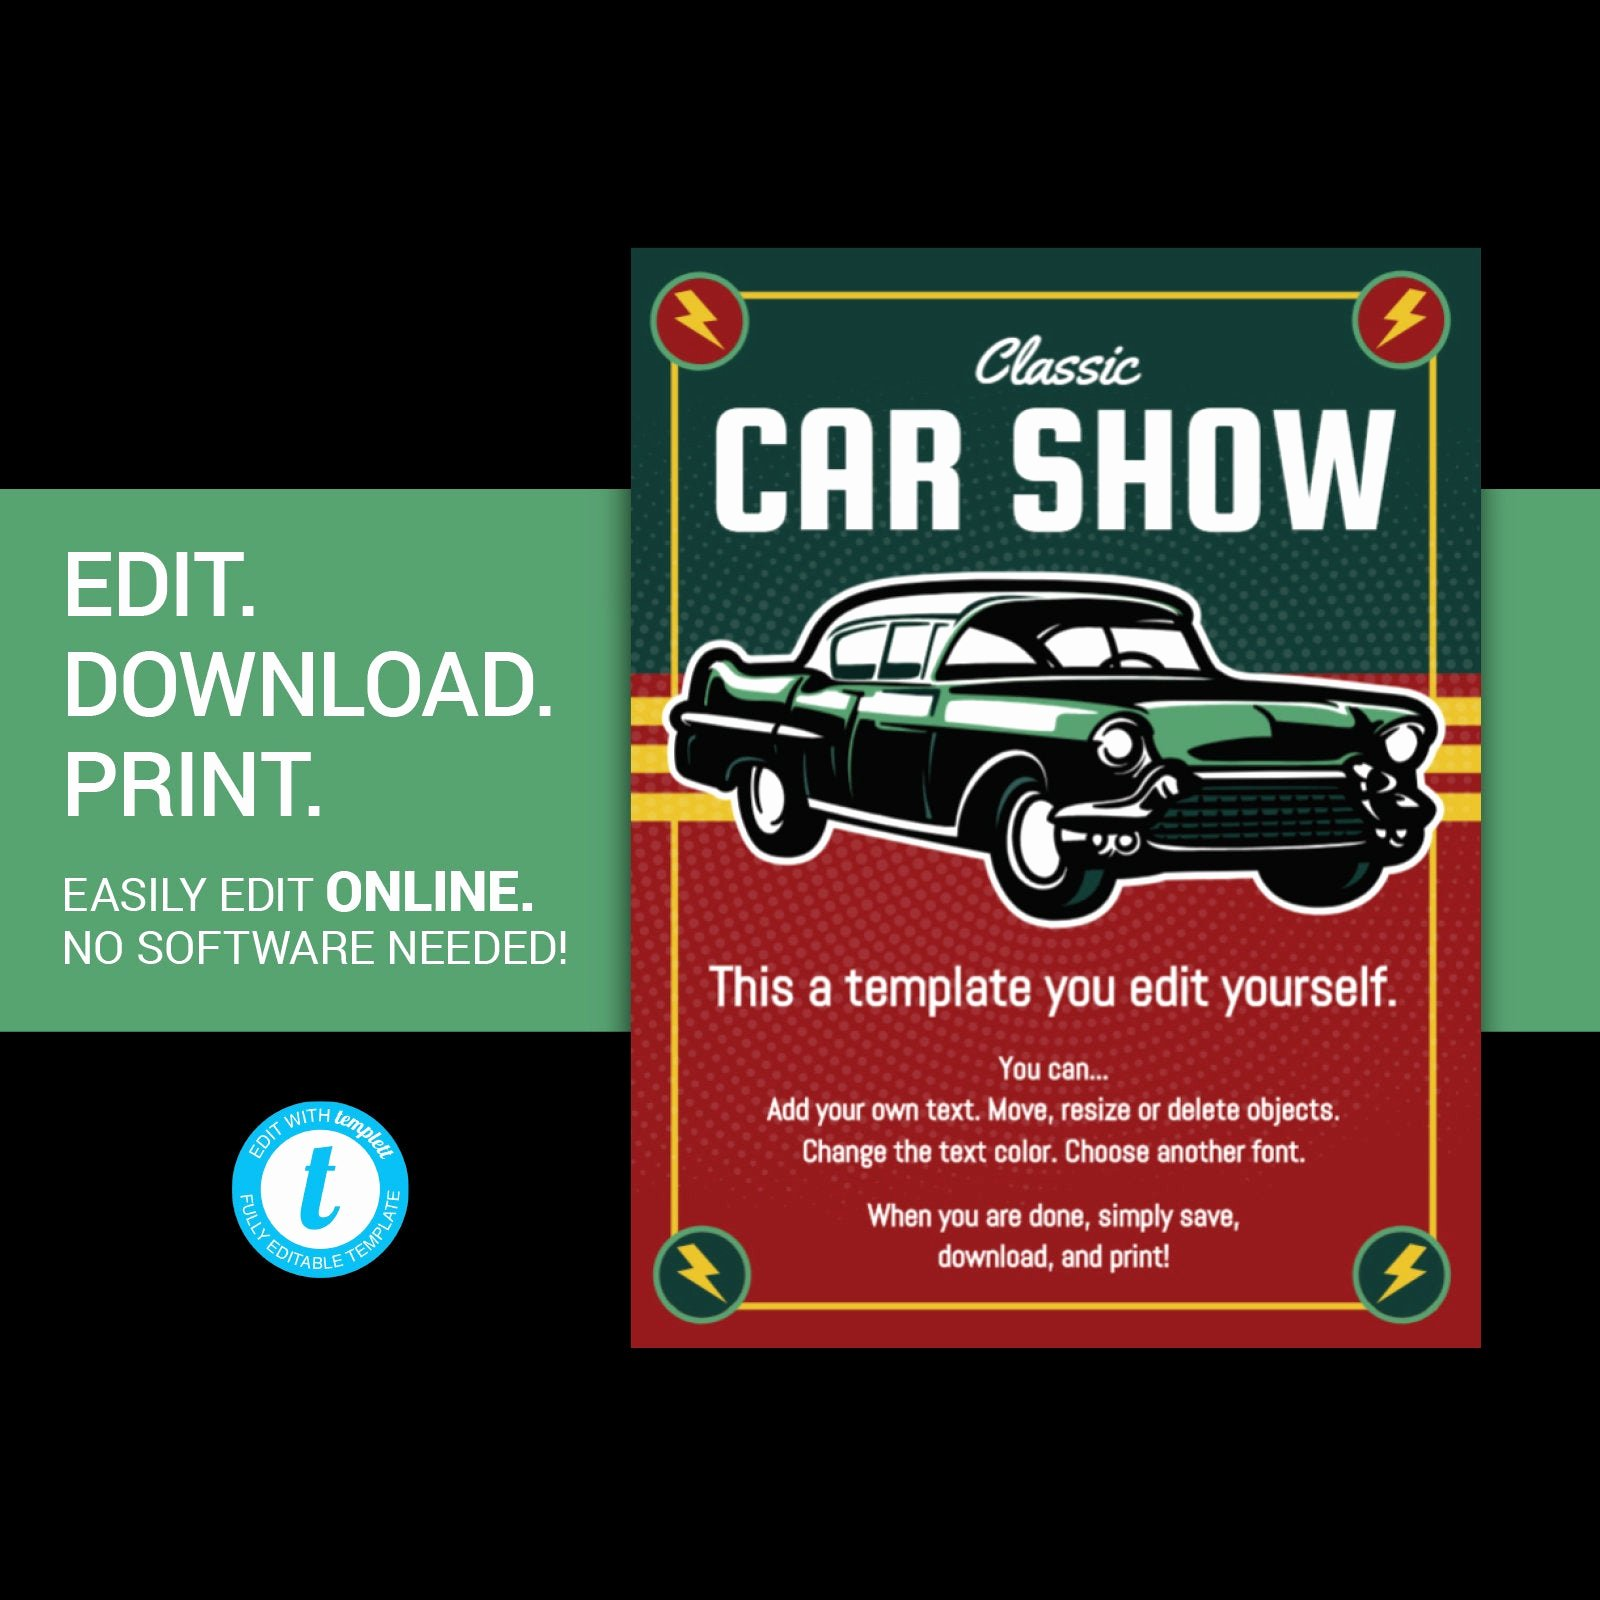 Car Show Flyer Template Unique Editable Car Show Flyer Classic Car Show Flyer Vintage Car